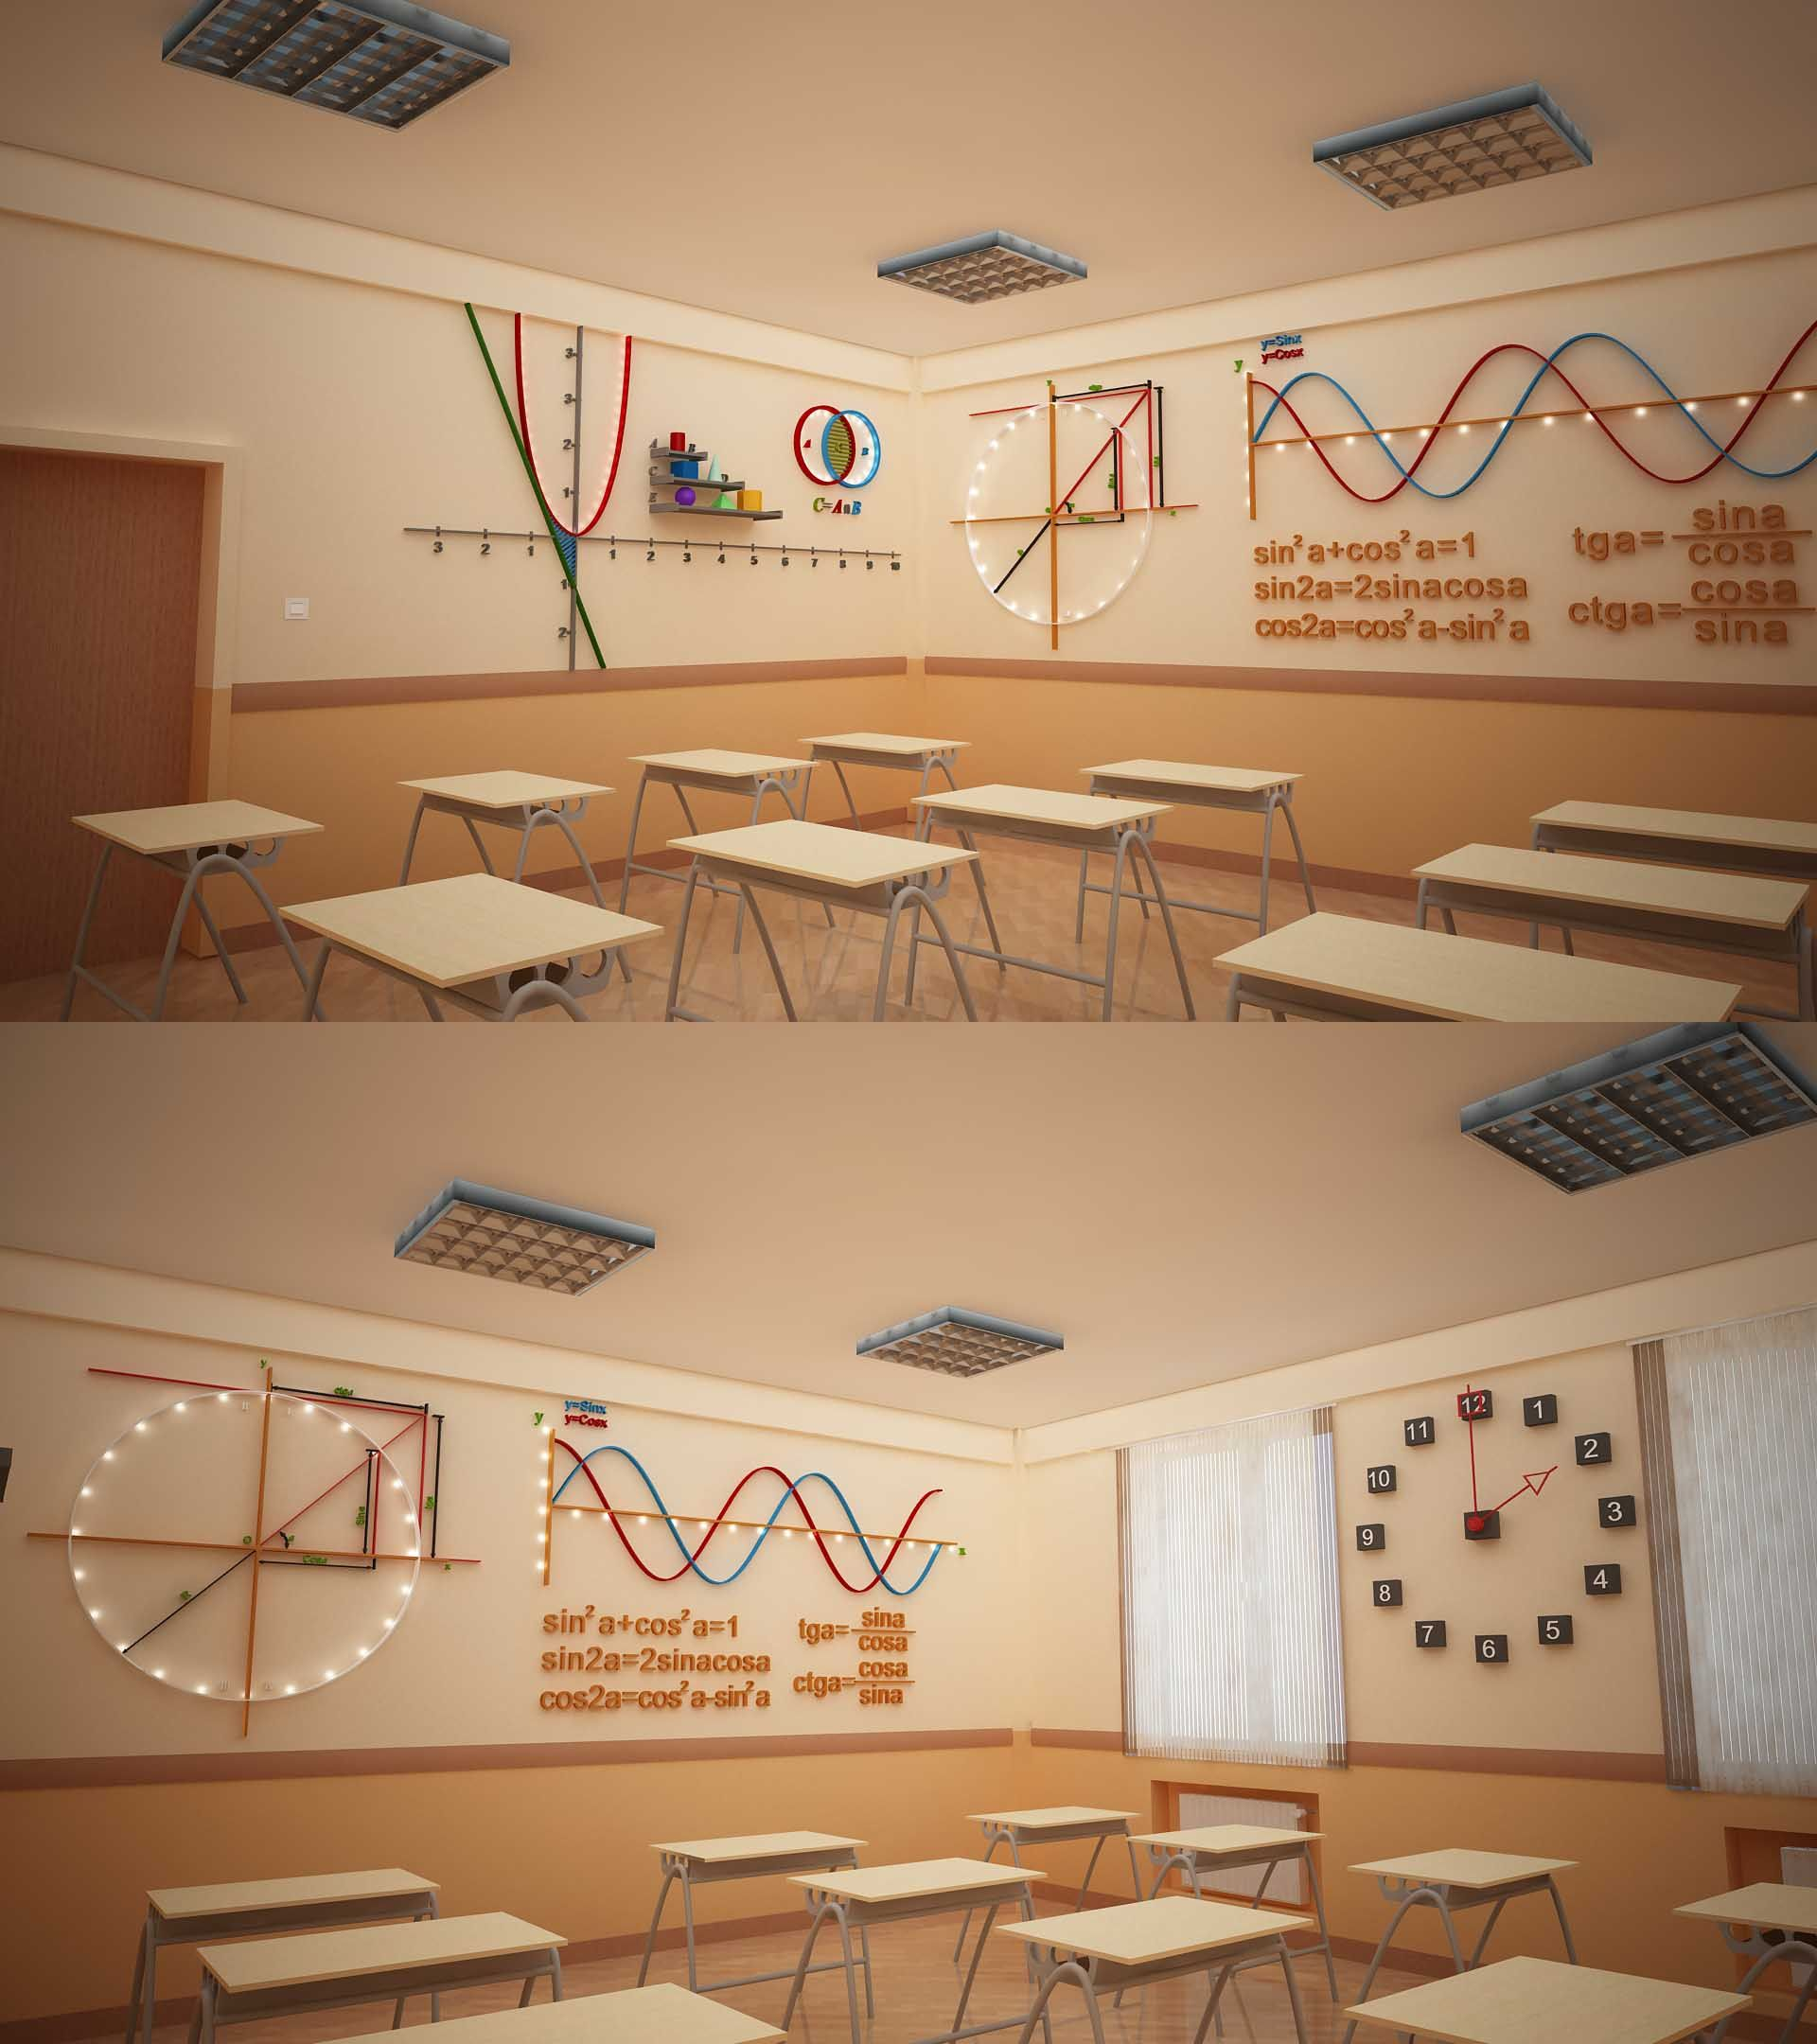 Classroom Wallpaper Design : Bms baku modern school math classroom design by